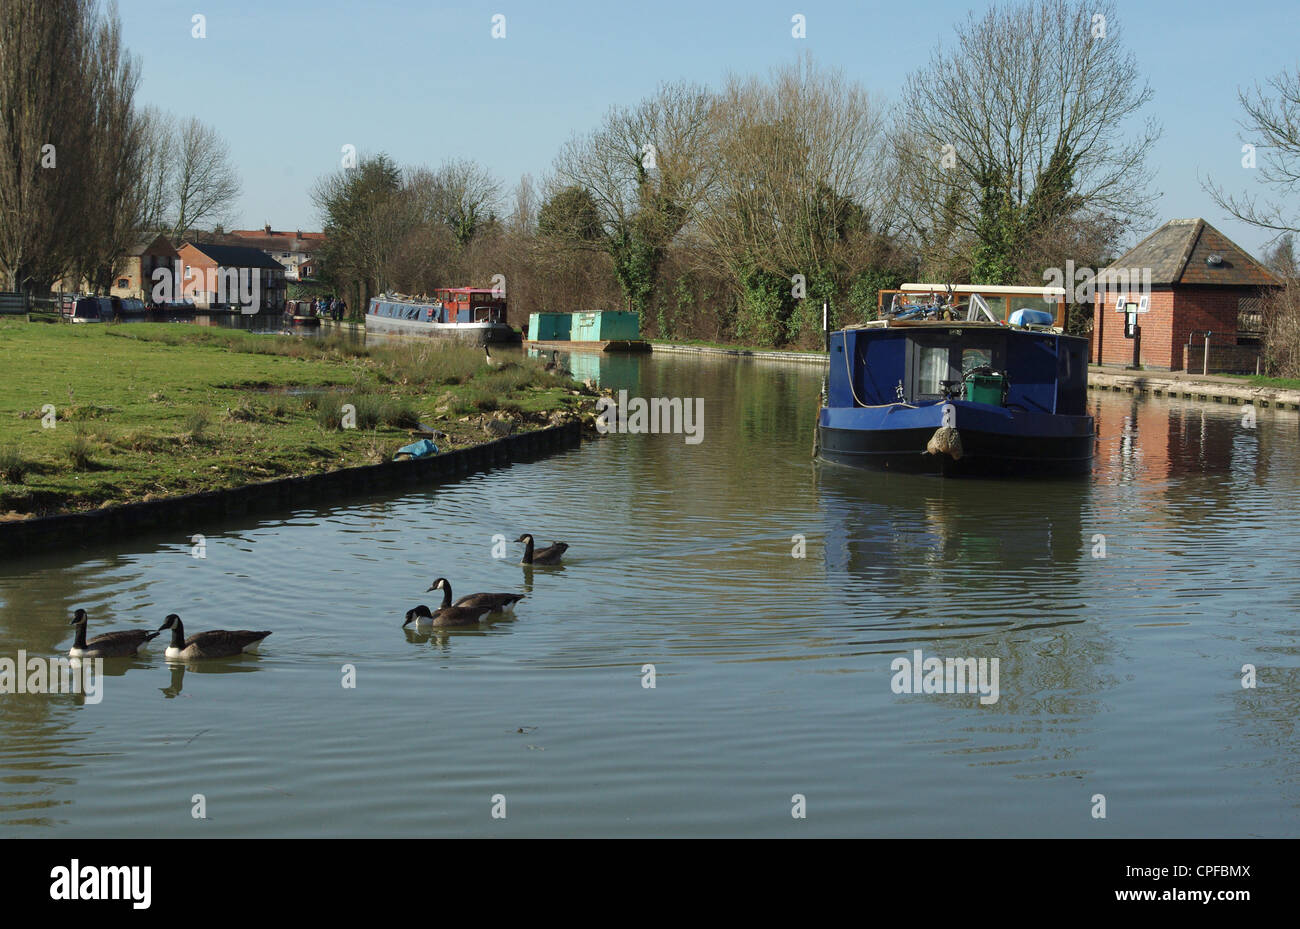 A barge travelling along the Grand Union Canal at Cosgrove, Canada Geese in the foreground - Stock Image